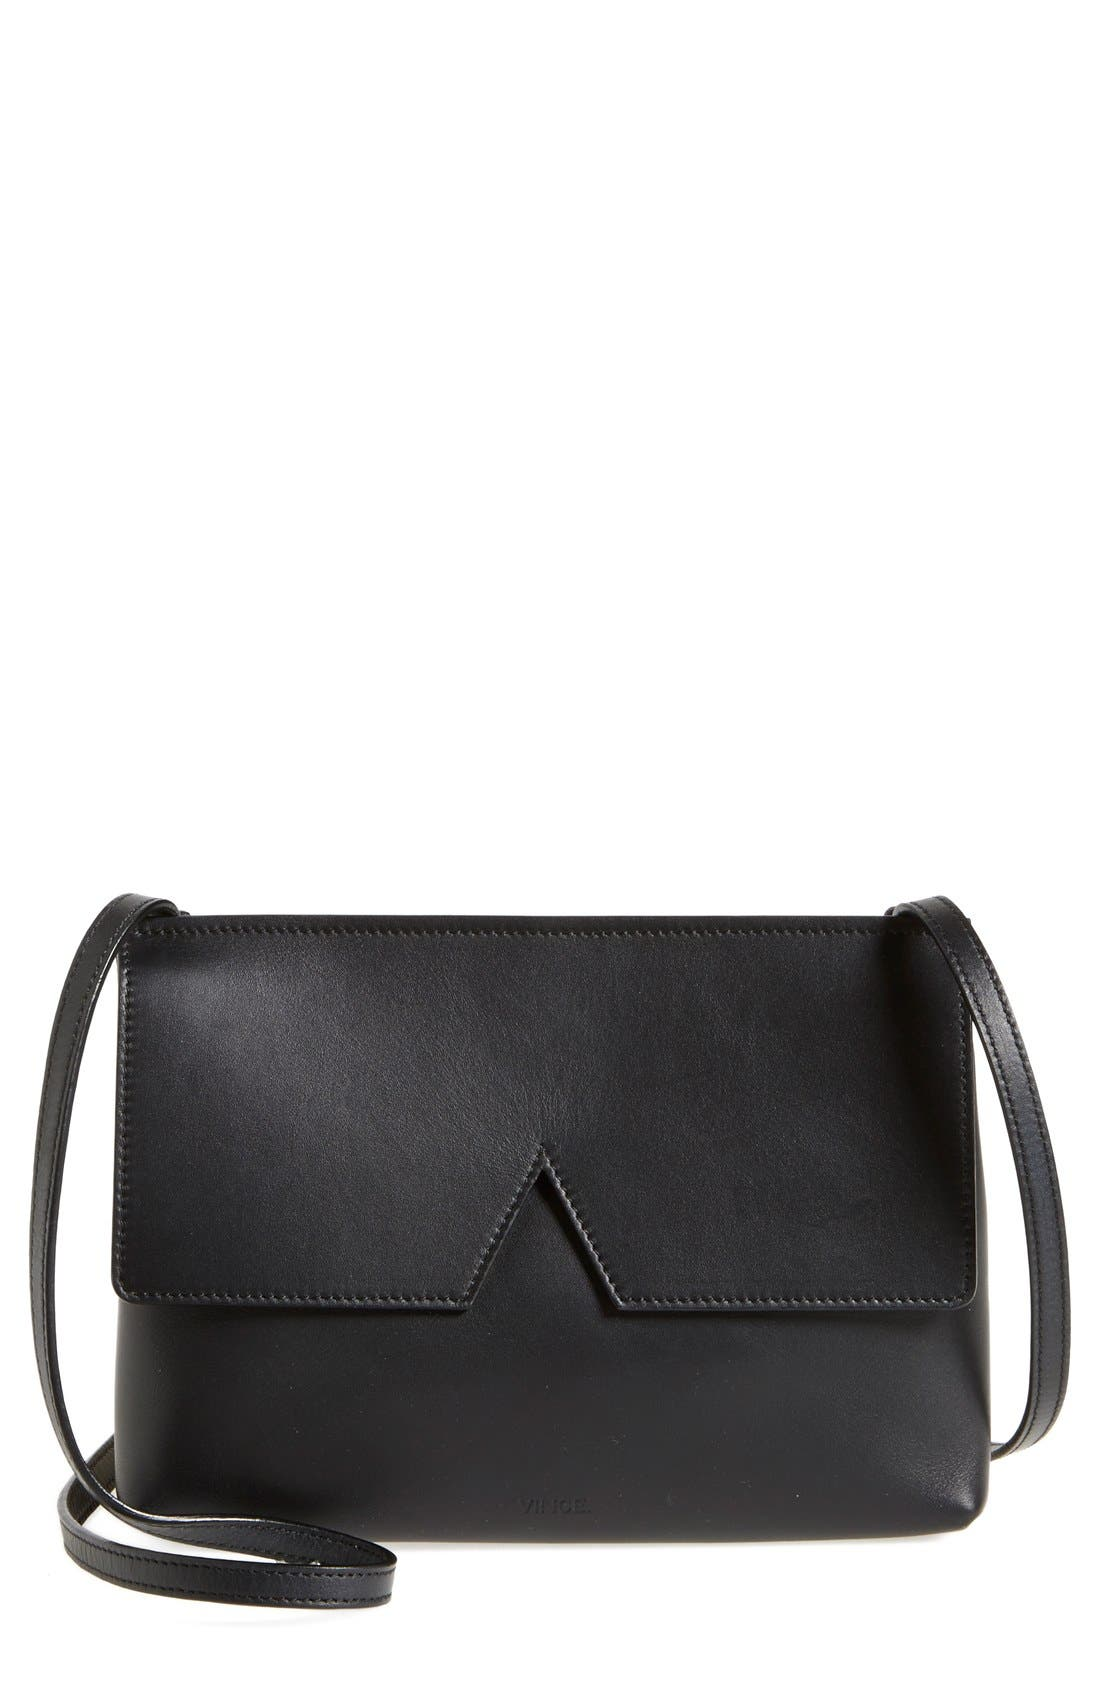 Alternate Image 1 Selected - Vince 'Signature Collection - Small' Leather Crossbody Bag